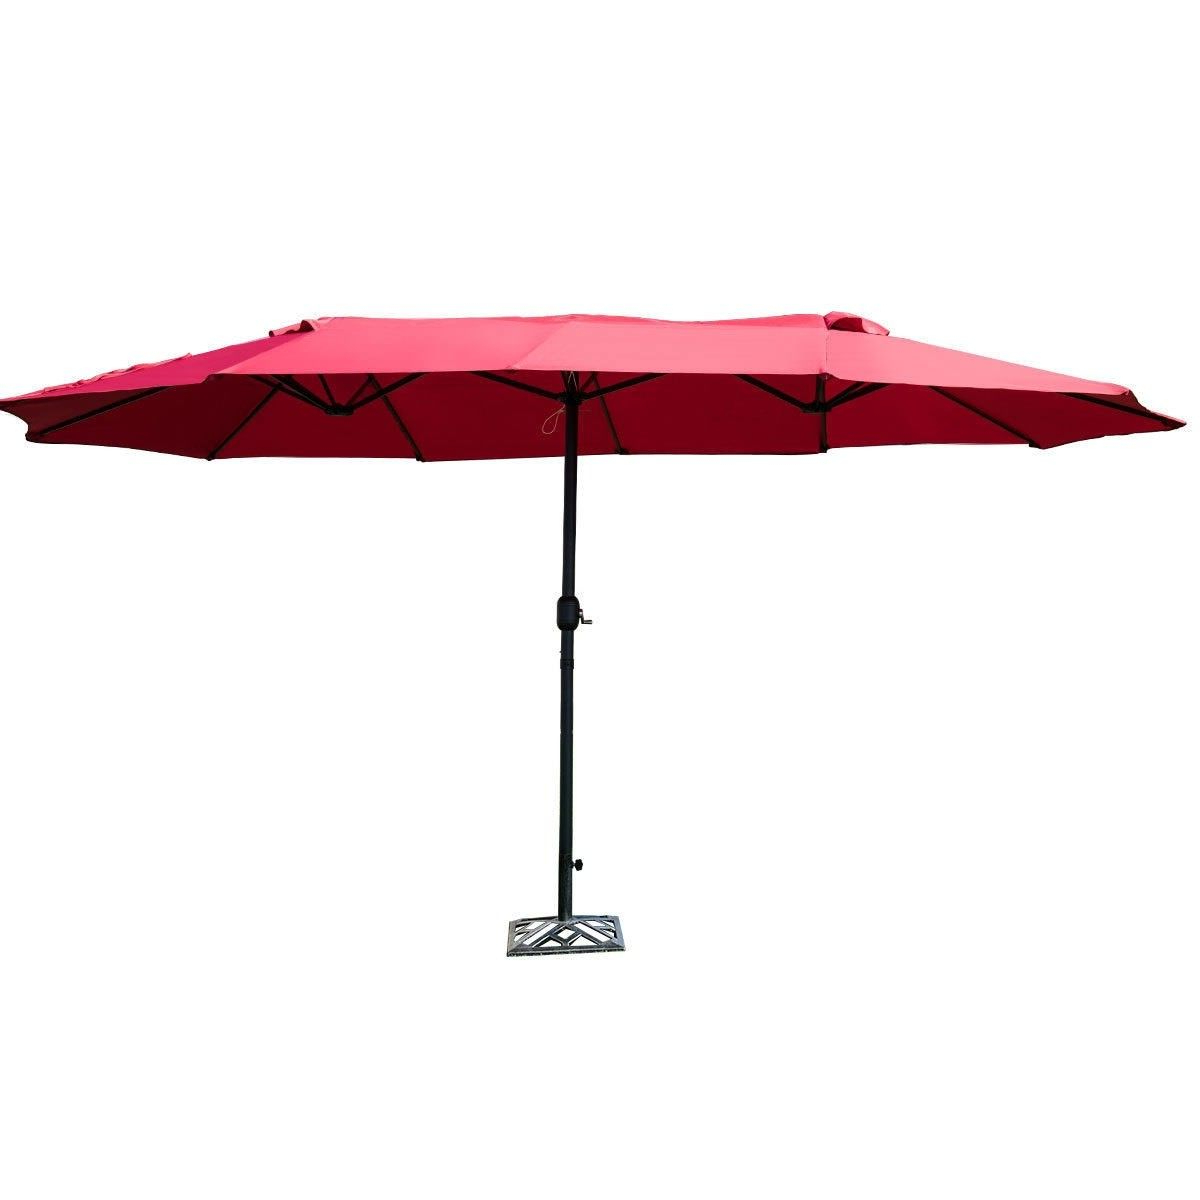 2020 Yajaira Cantilever Umbrellas In 15' Market Outdoor Umbrella Double Sided Twin Umbrella With Crank (View 12 of 20)